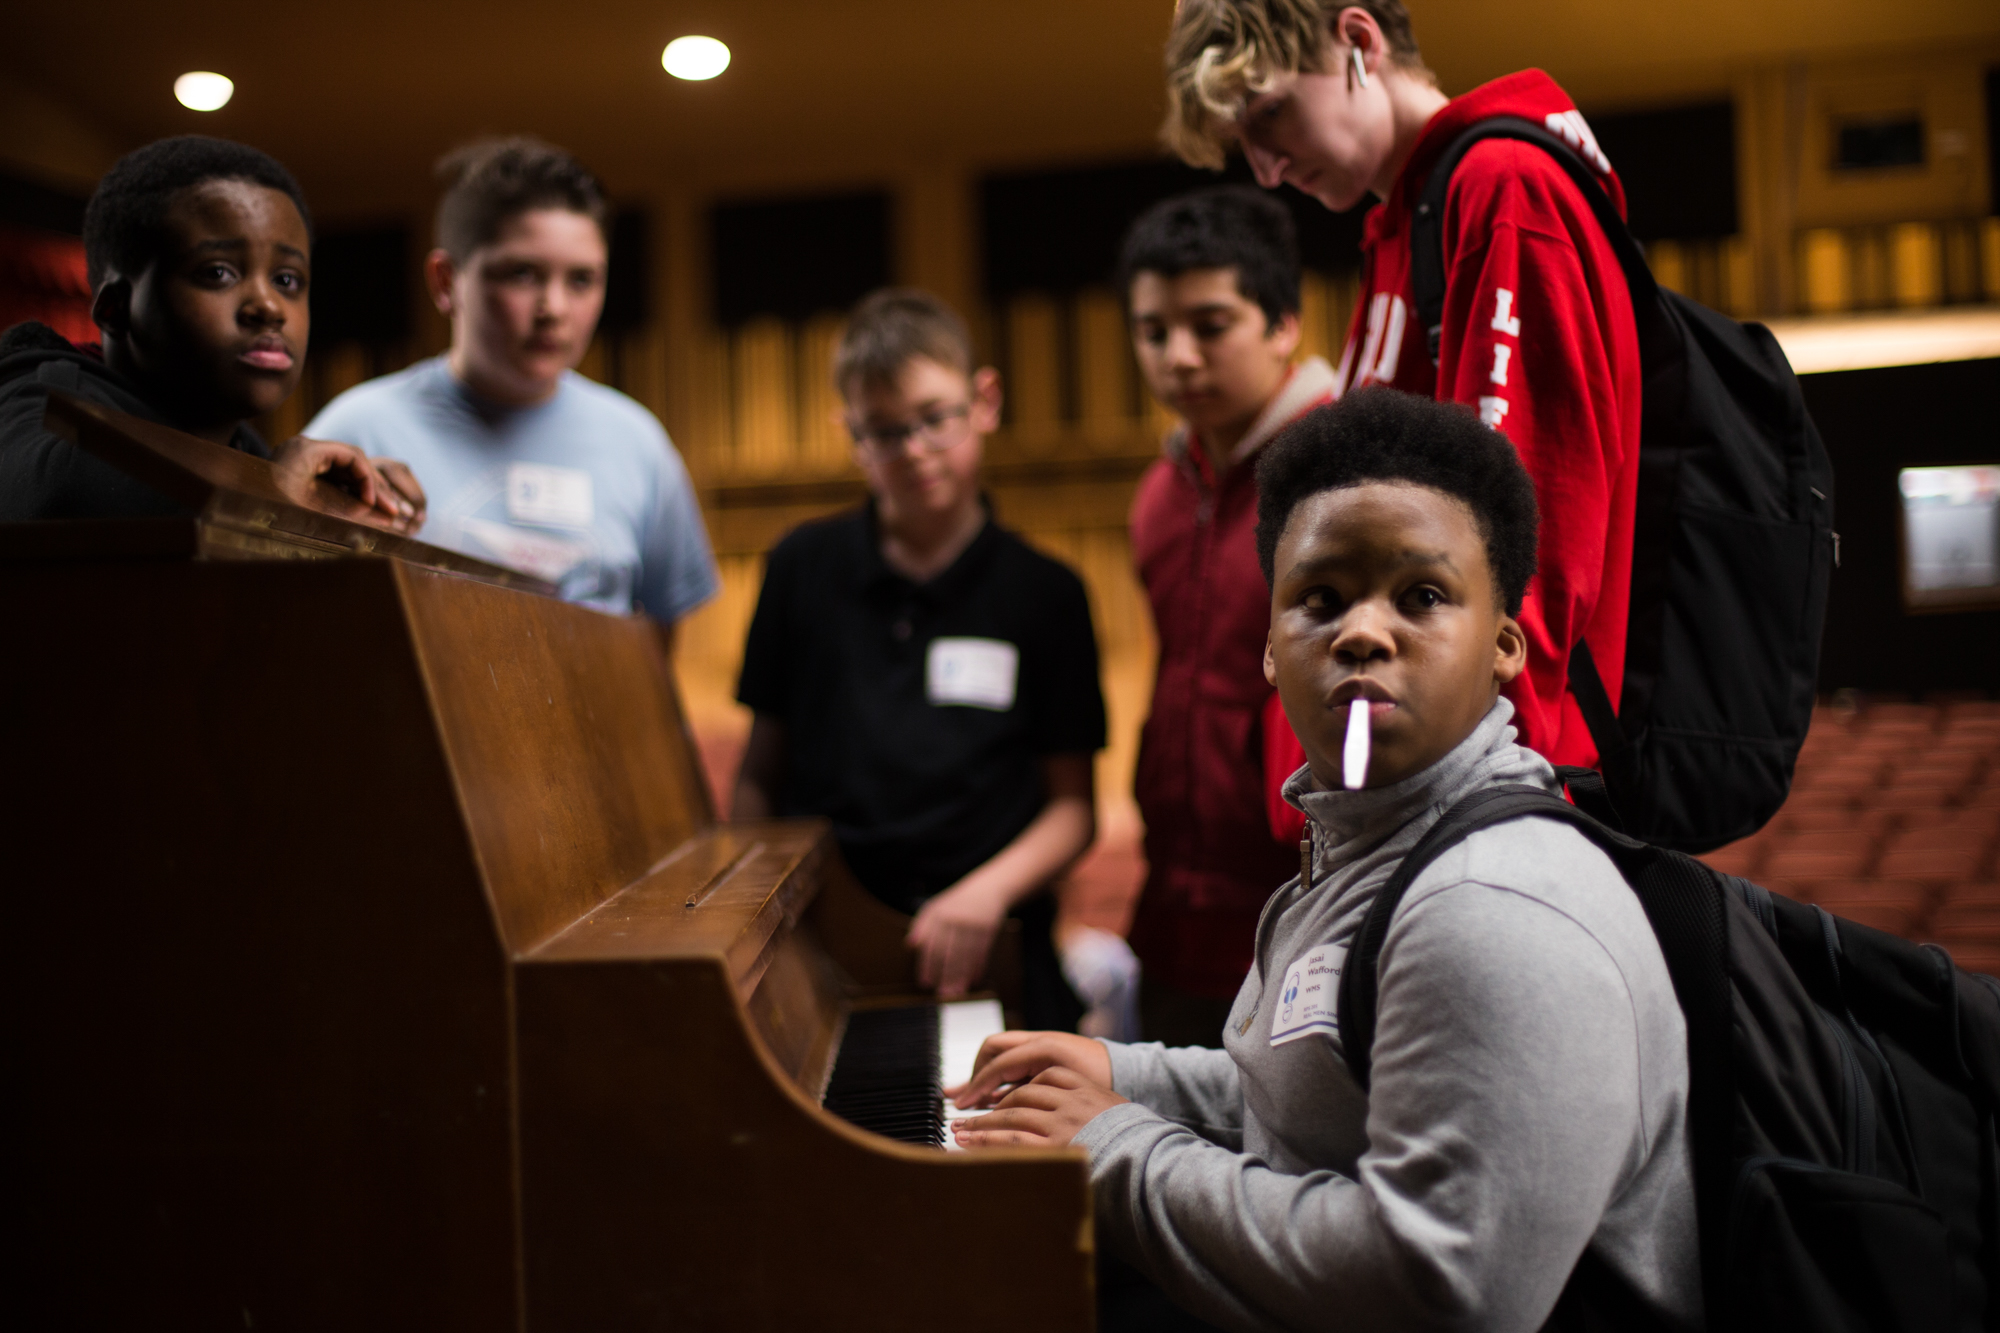 West Middle School student Jasai Wafford, right, plays piano as other students watch after a Real Men Sing, a workshop celebrating young men who sing with Rockford school choirs, on Friday, April 13, 2018, at Auburn High School in Rockford. [SCOTT P. YATES/RRSTAR.COM STAFF]